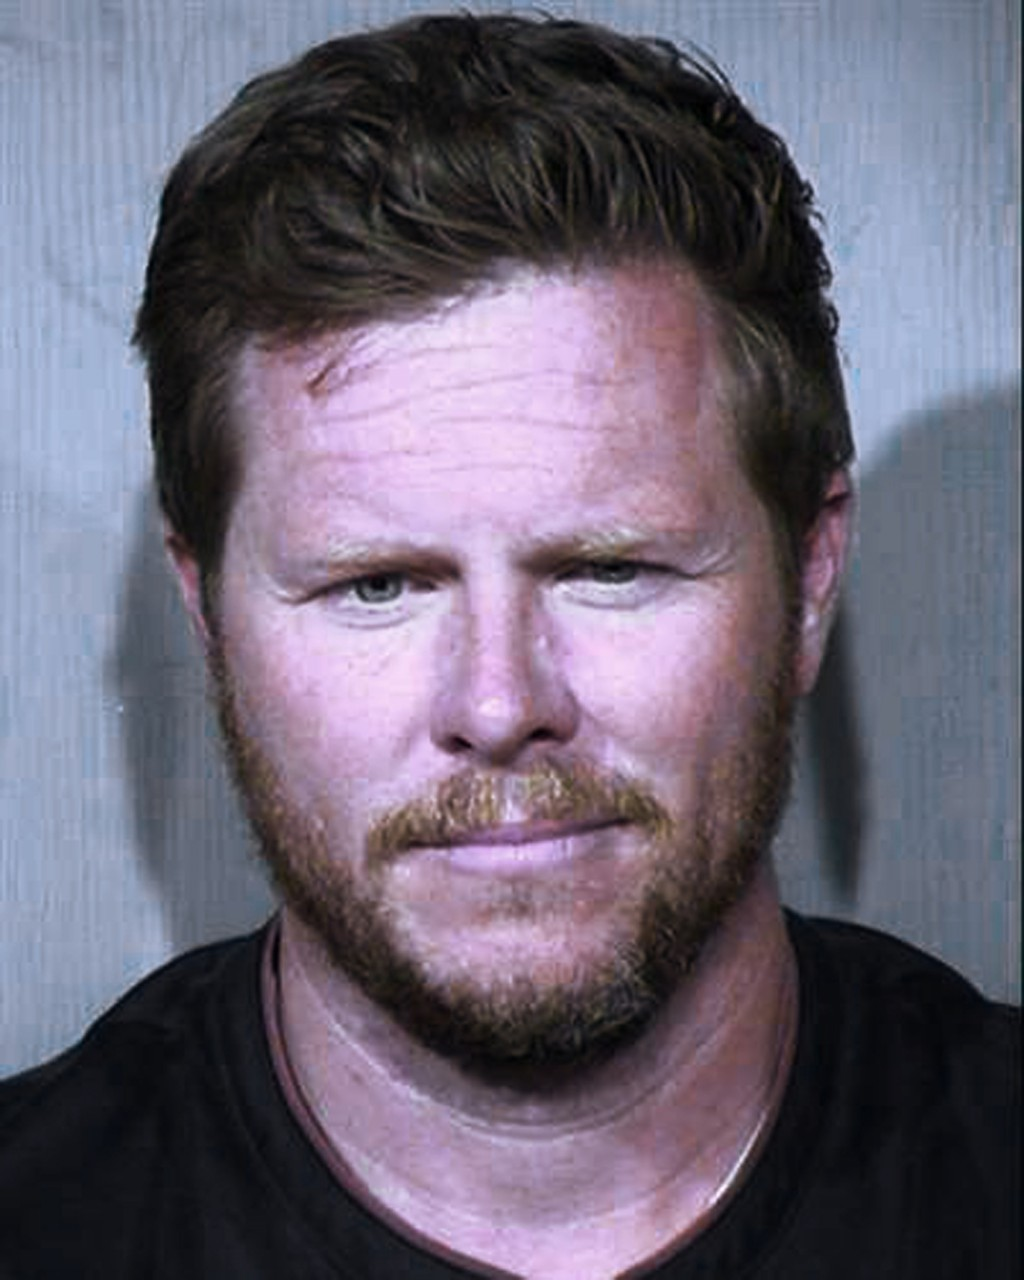 FILE - This undated booking photo provided by the Maricopa County Sheriff's Office shows County Assessor Paul Petersen. He resigned from his elected p...